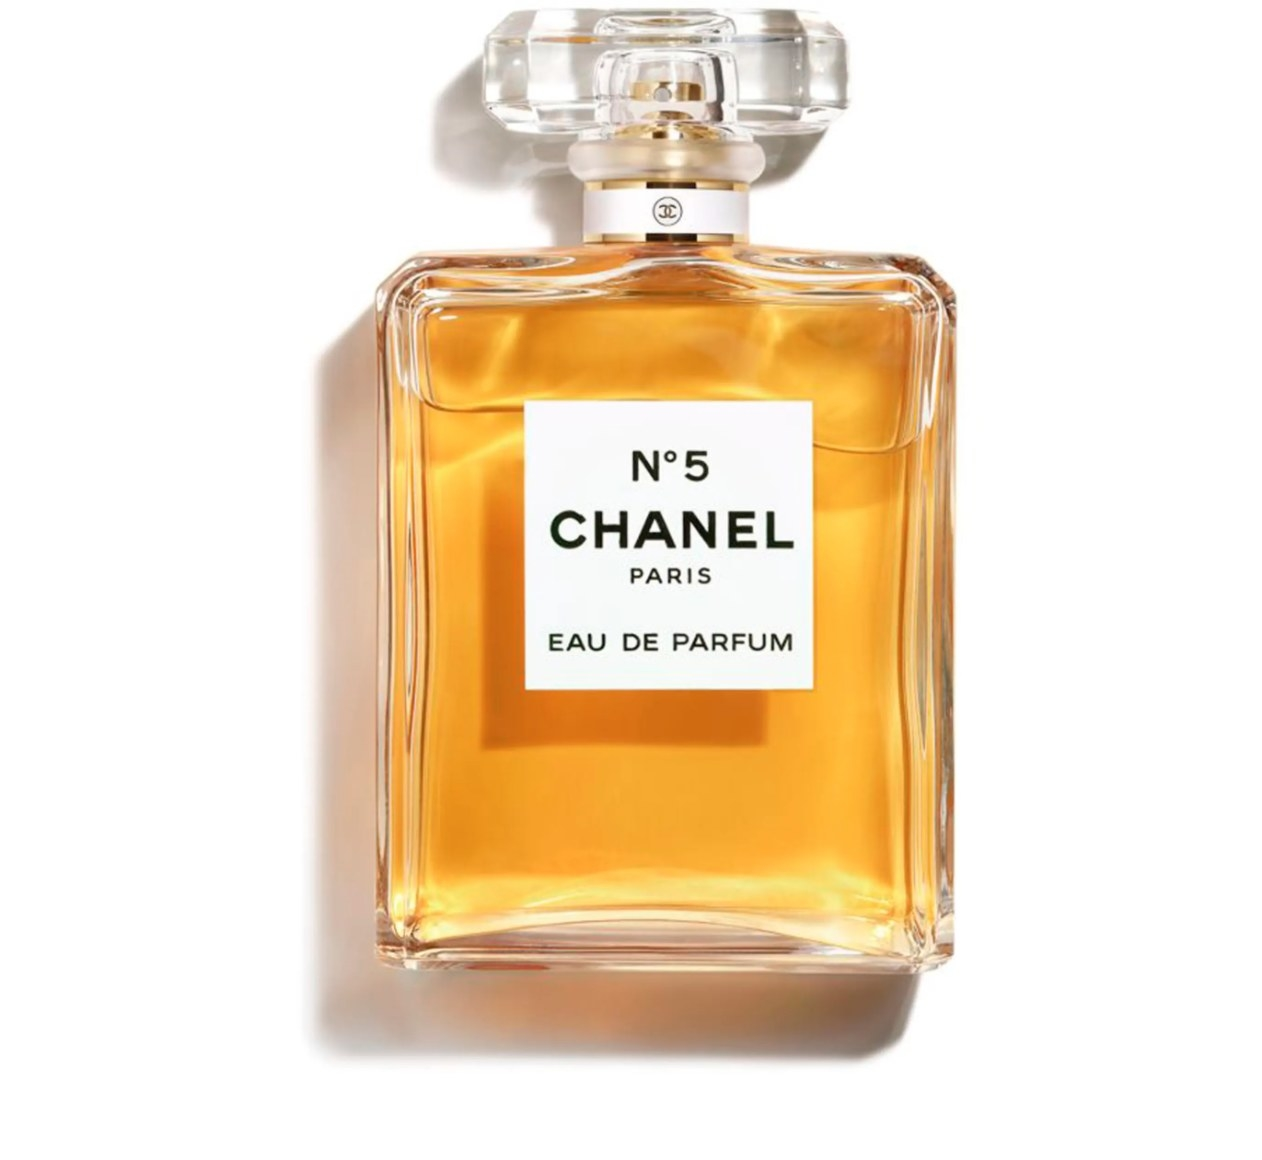 The Chanel number 5 perfume